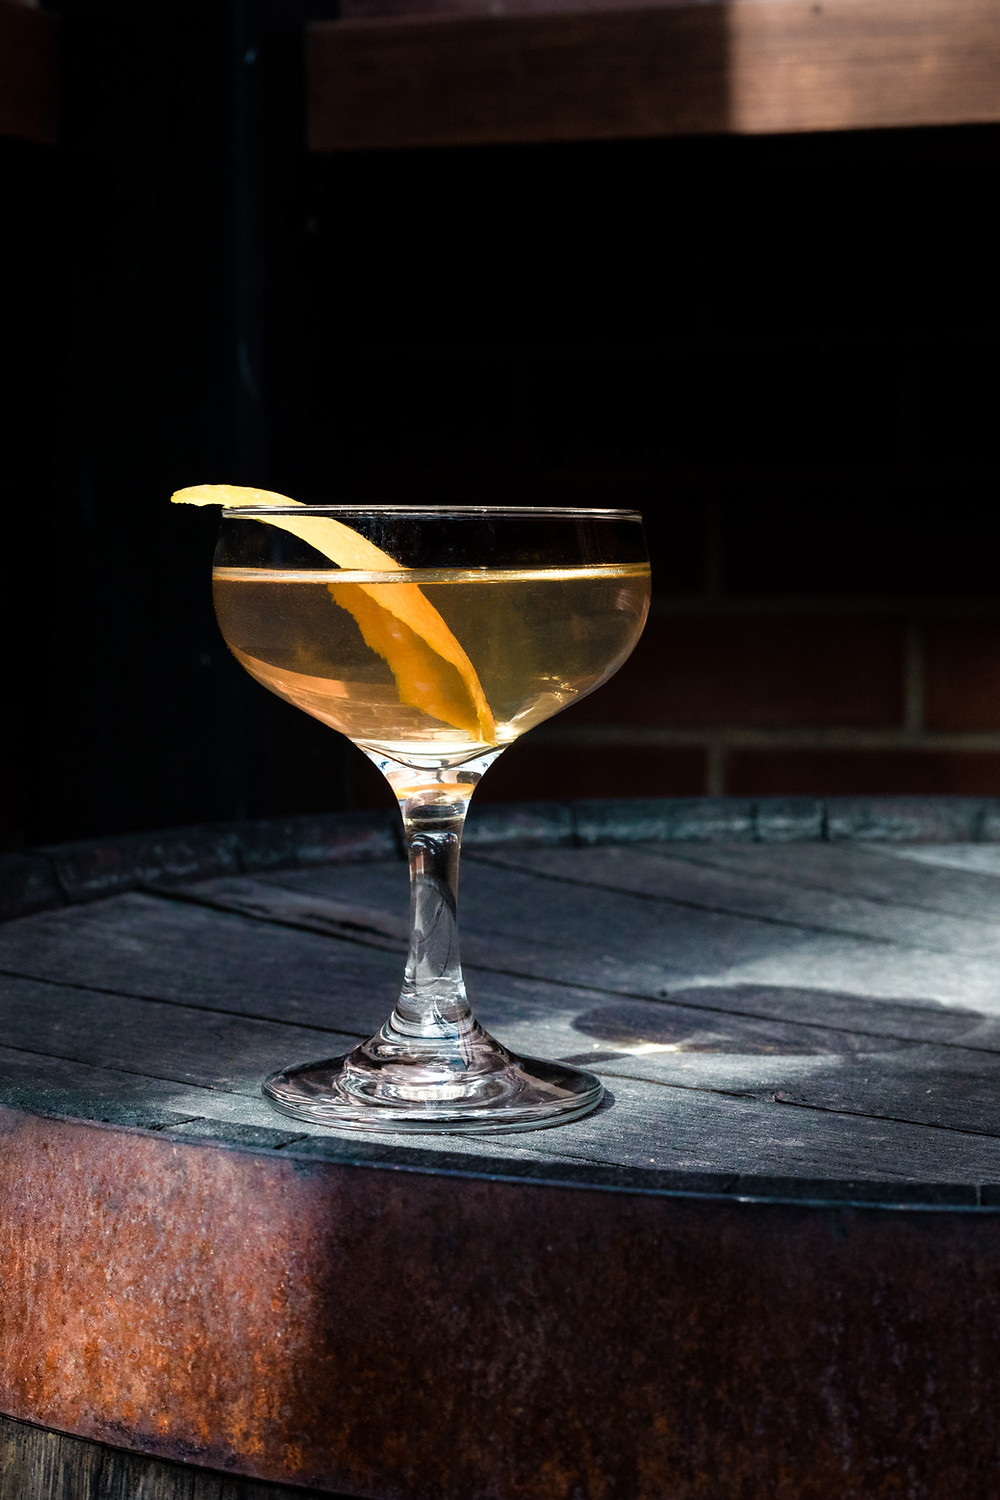 A cocktail recipe by Allie Martin, from Calgary, Alberta